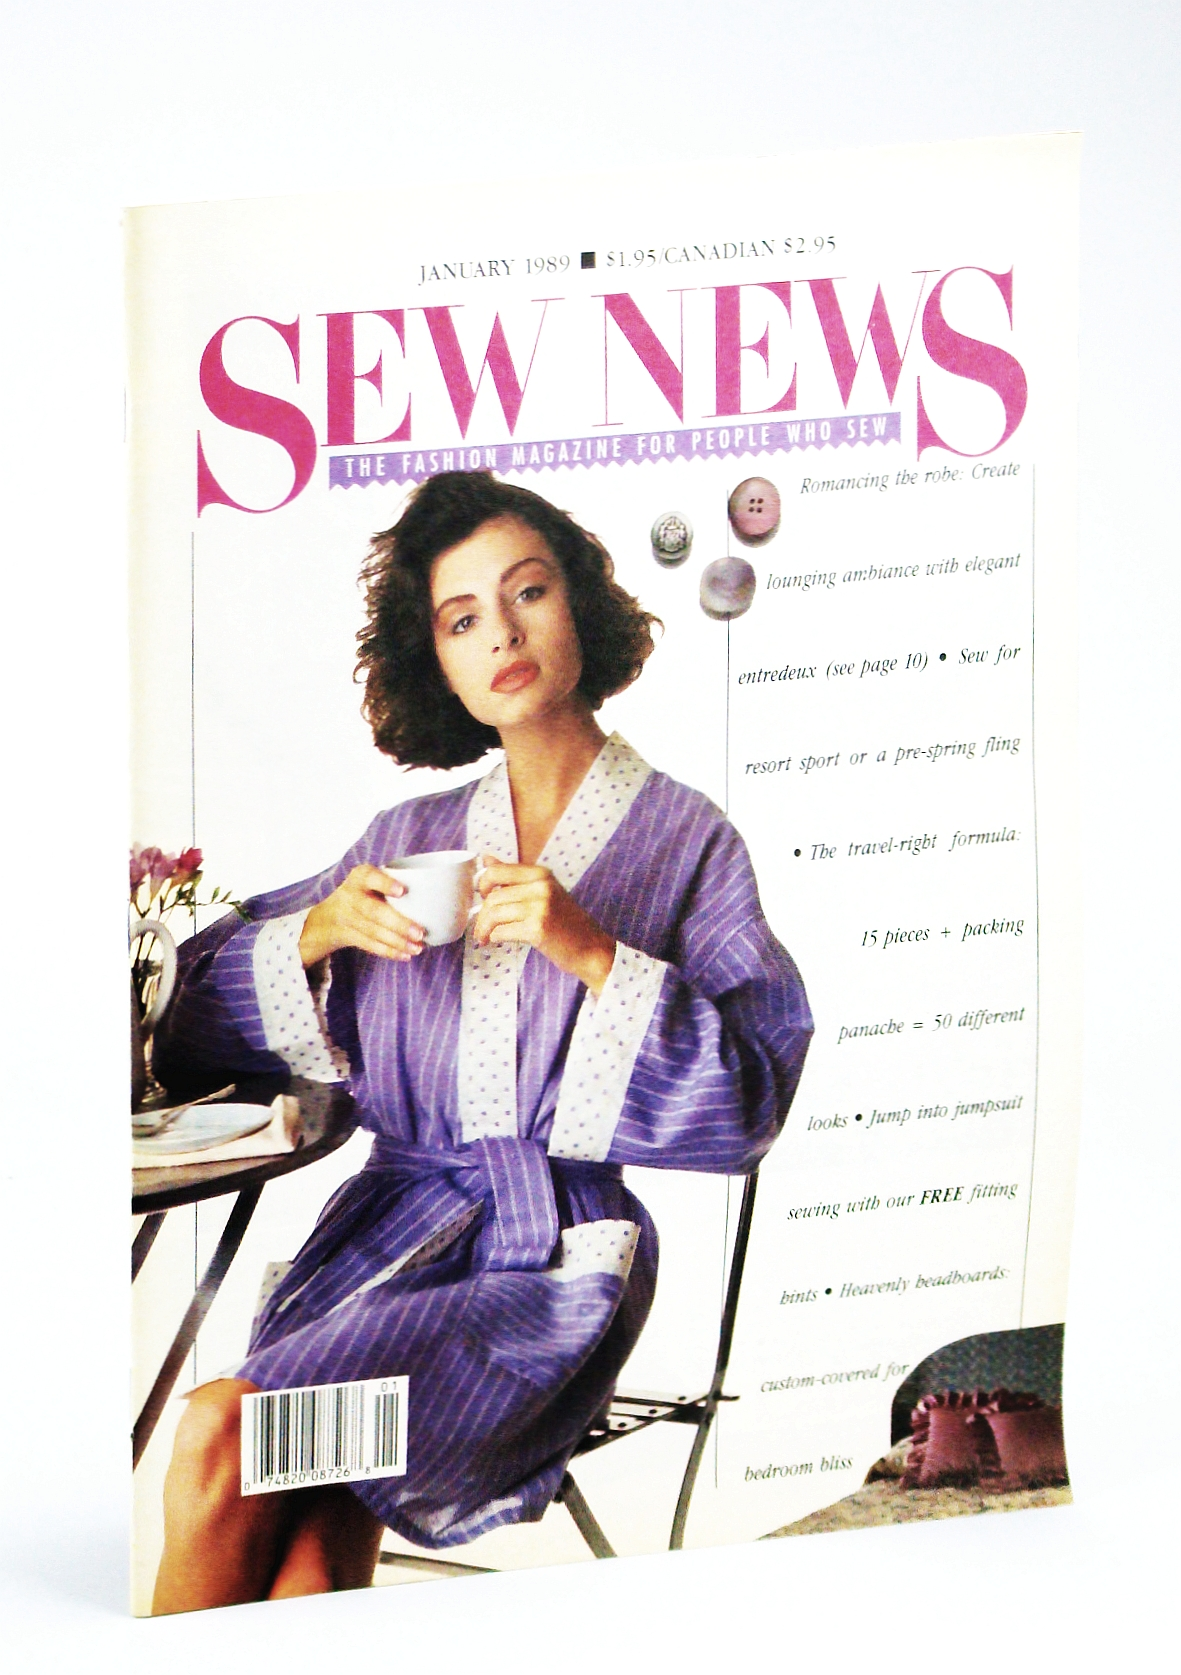 Image for Sew News - The Fashion Magazine For People Who Sew, Number 76, January [Jan.] 1989 -  The (Linda) MacPhee Difference